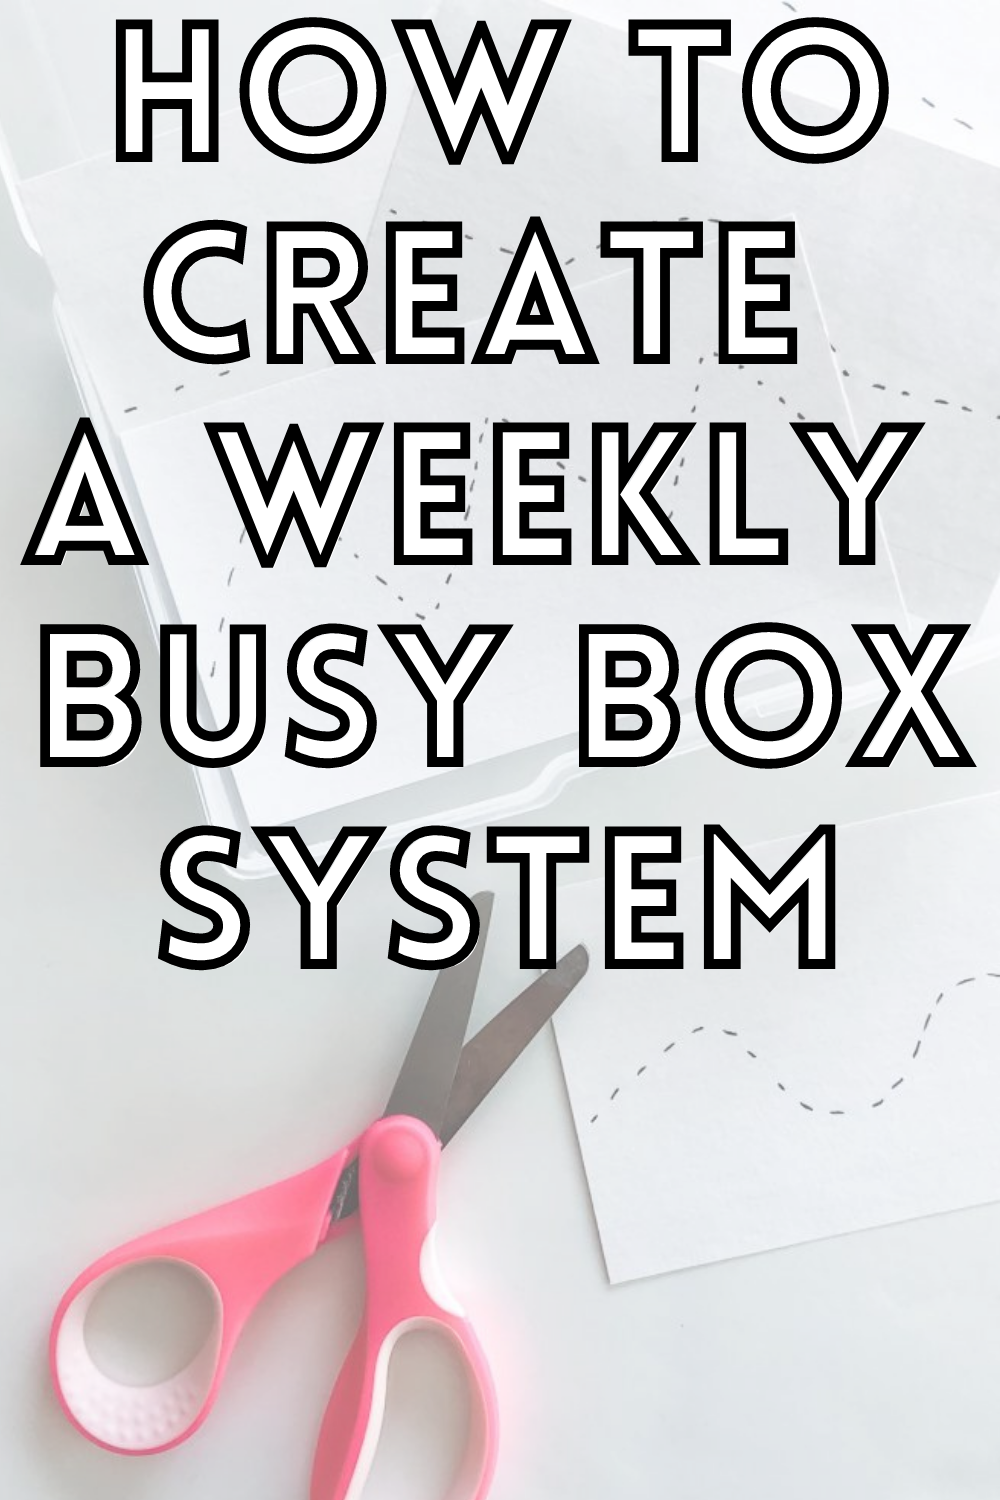 How to Create a Weekly Busy Box System